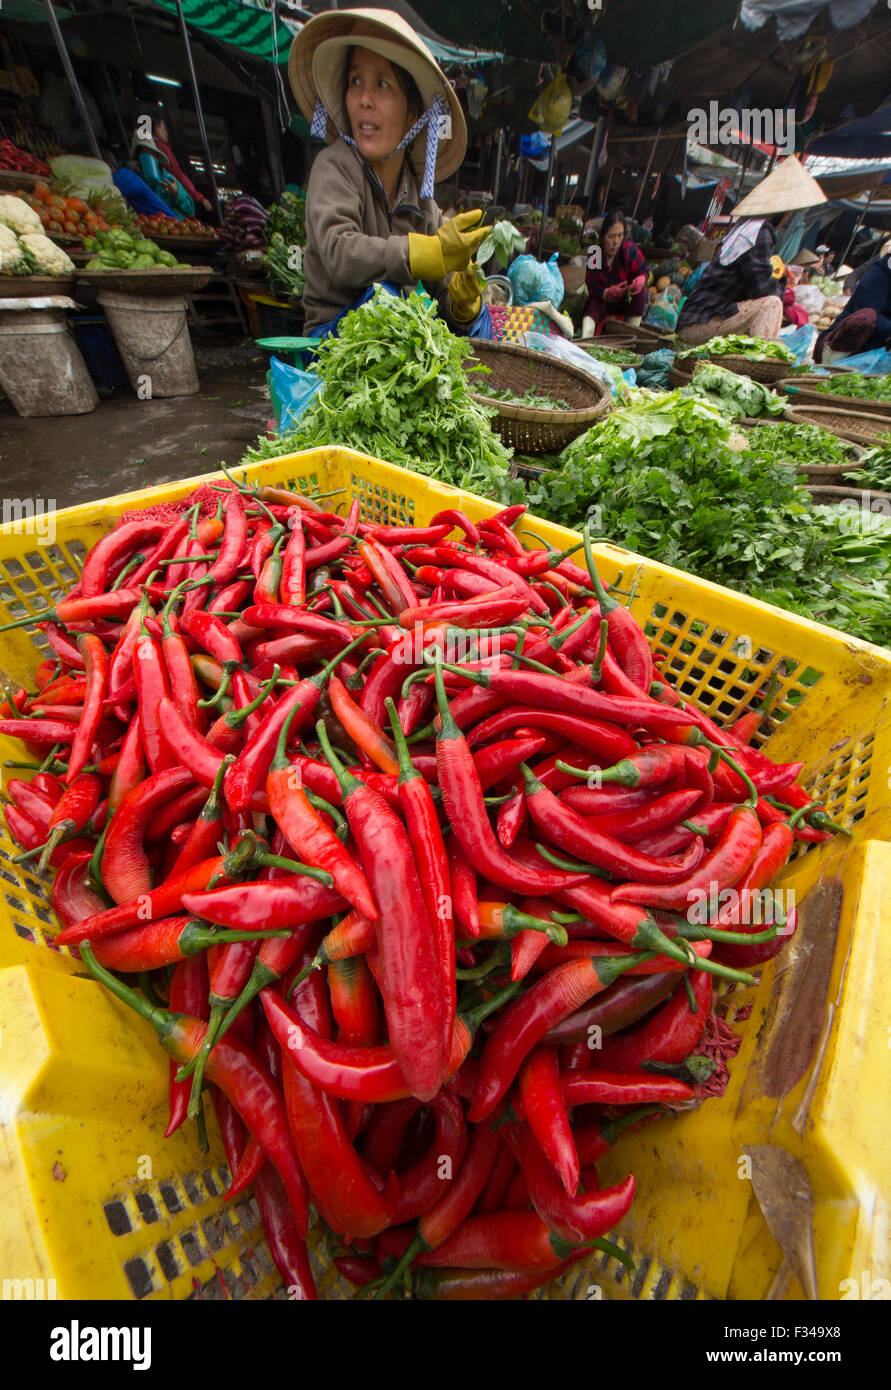 chillies in Dong Ba Market, Hue, Vietnam - Stock Image